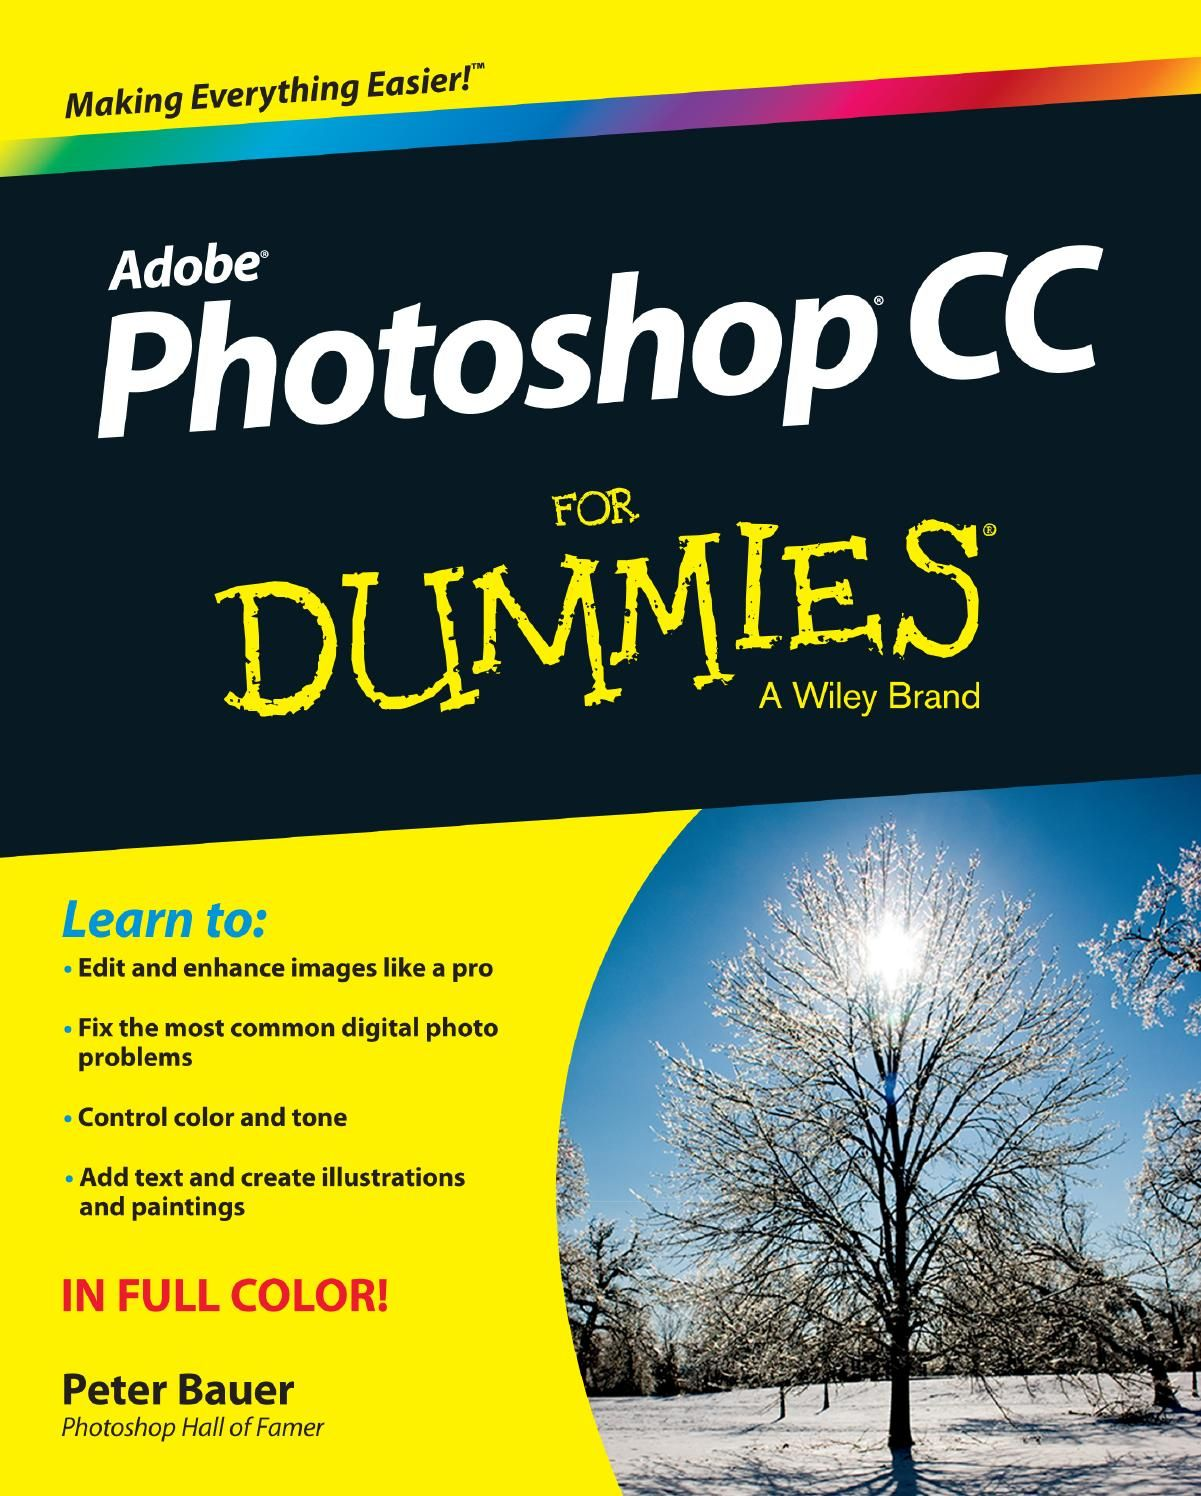 Adobe Photoshop Cc For Dummies Photoshop Photoshop For Dummies Photoshop Book